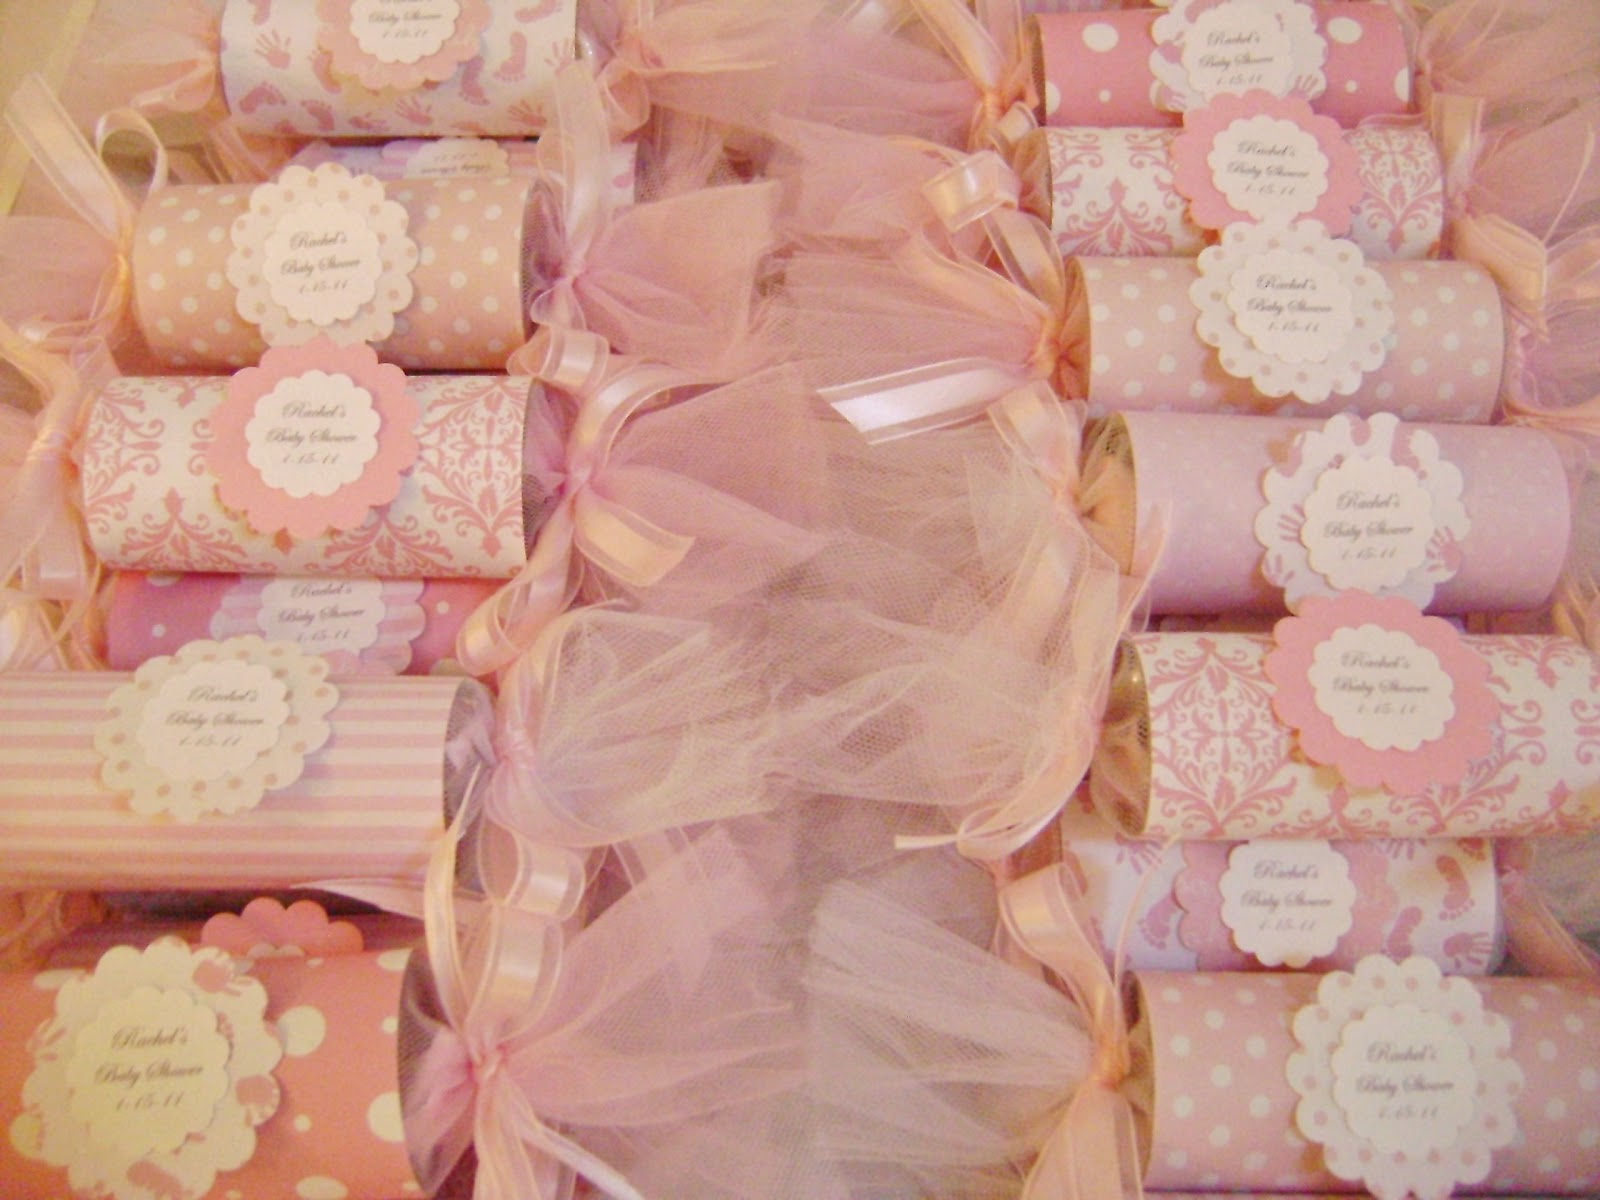 baby shower decorations pink - Amazing Goods Printers